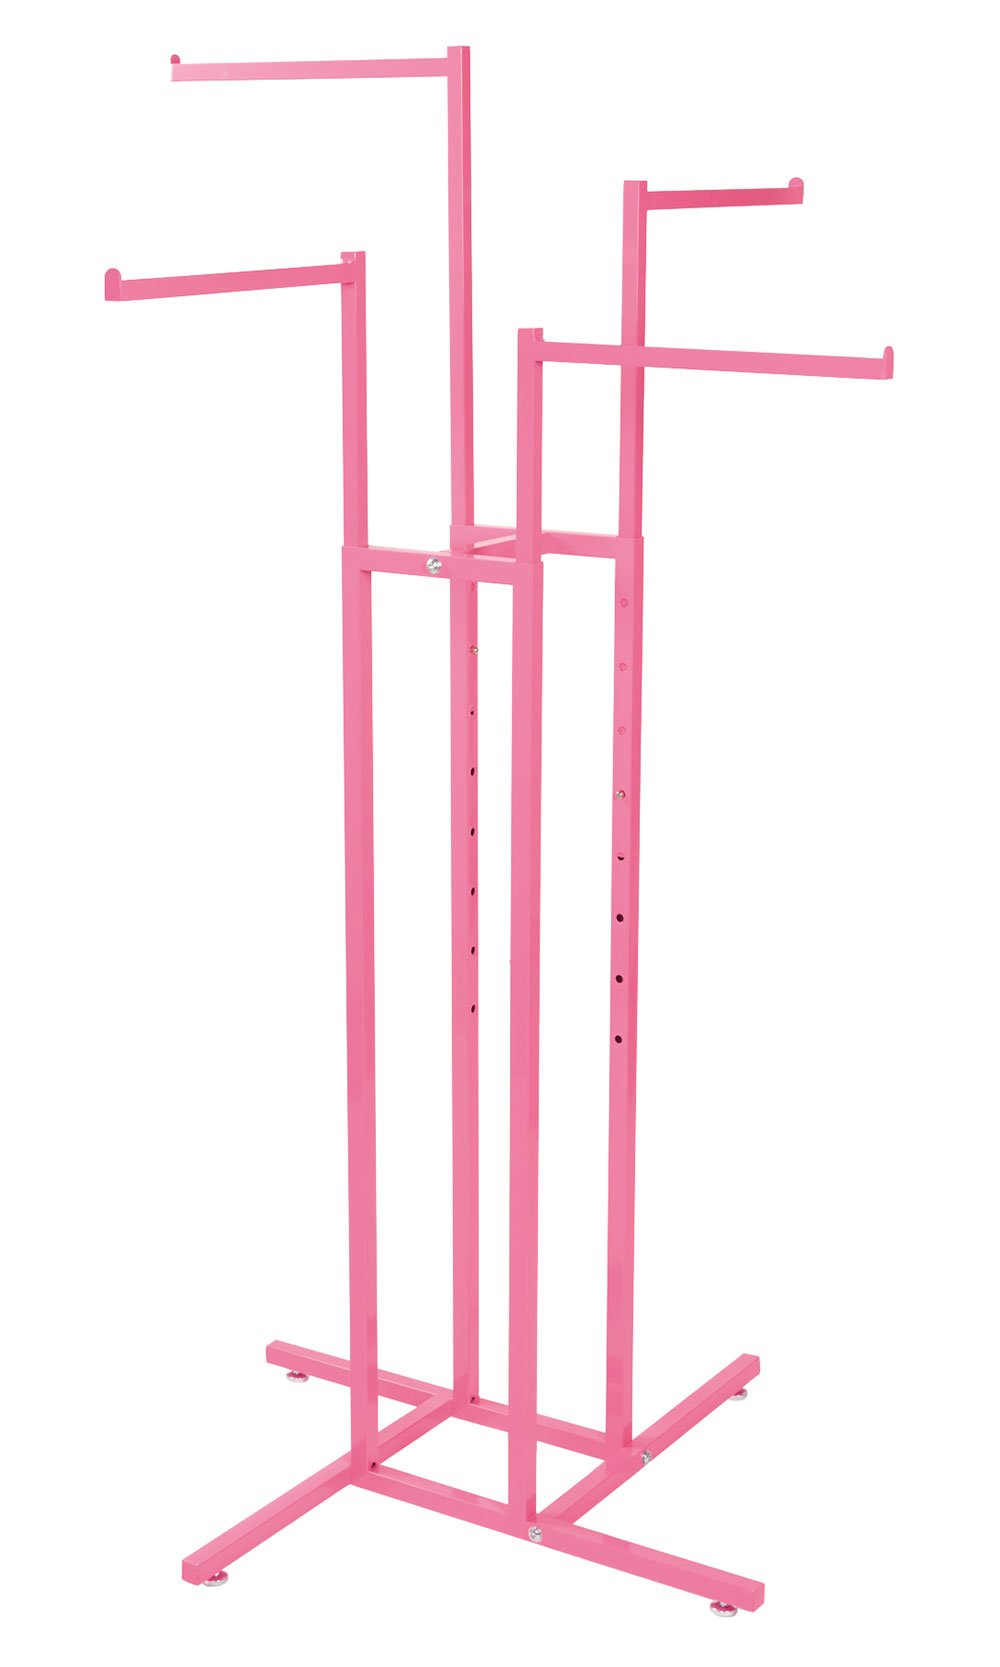 SSWBasics Hot Pink 4 Way Rack with Straight Arms